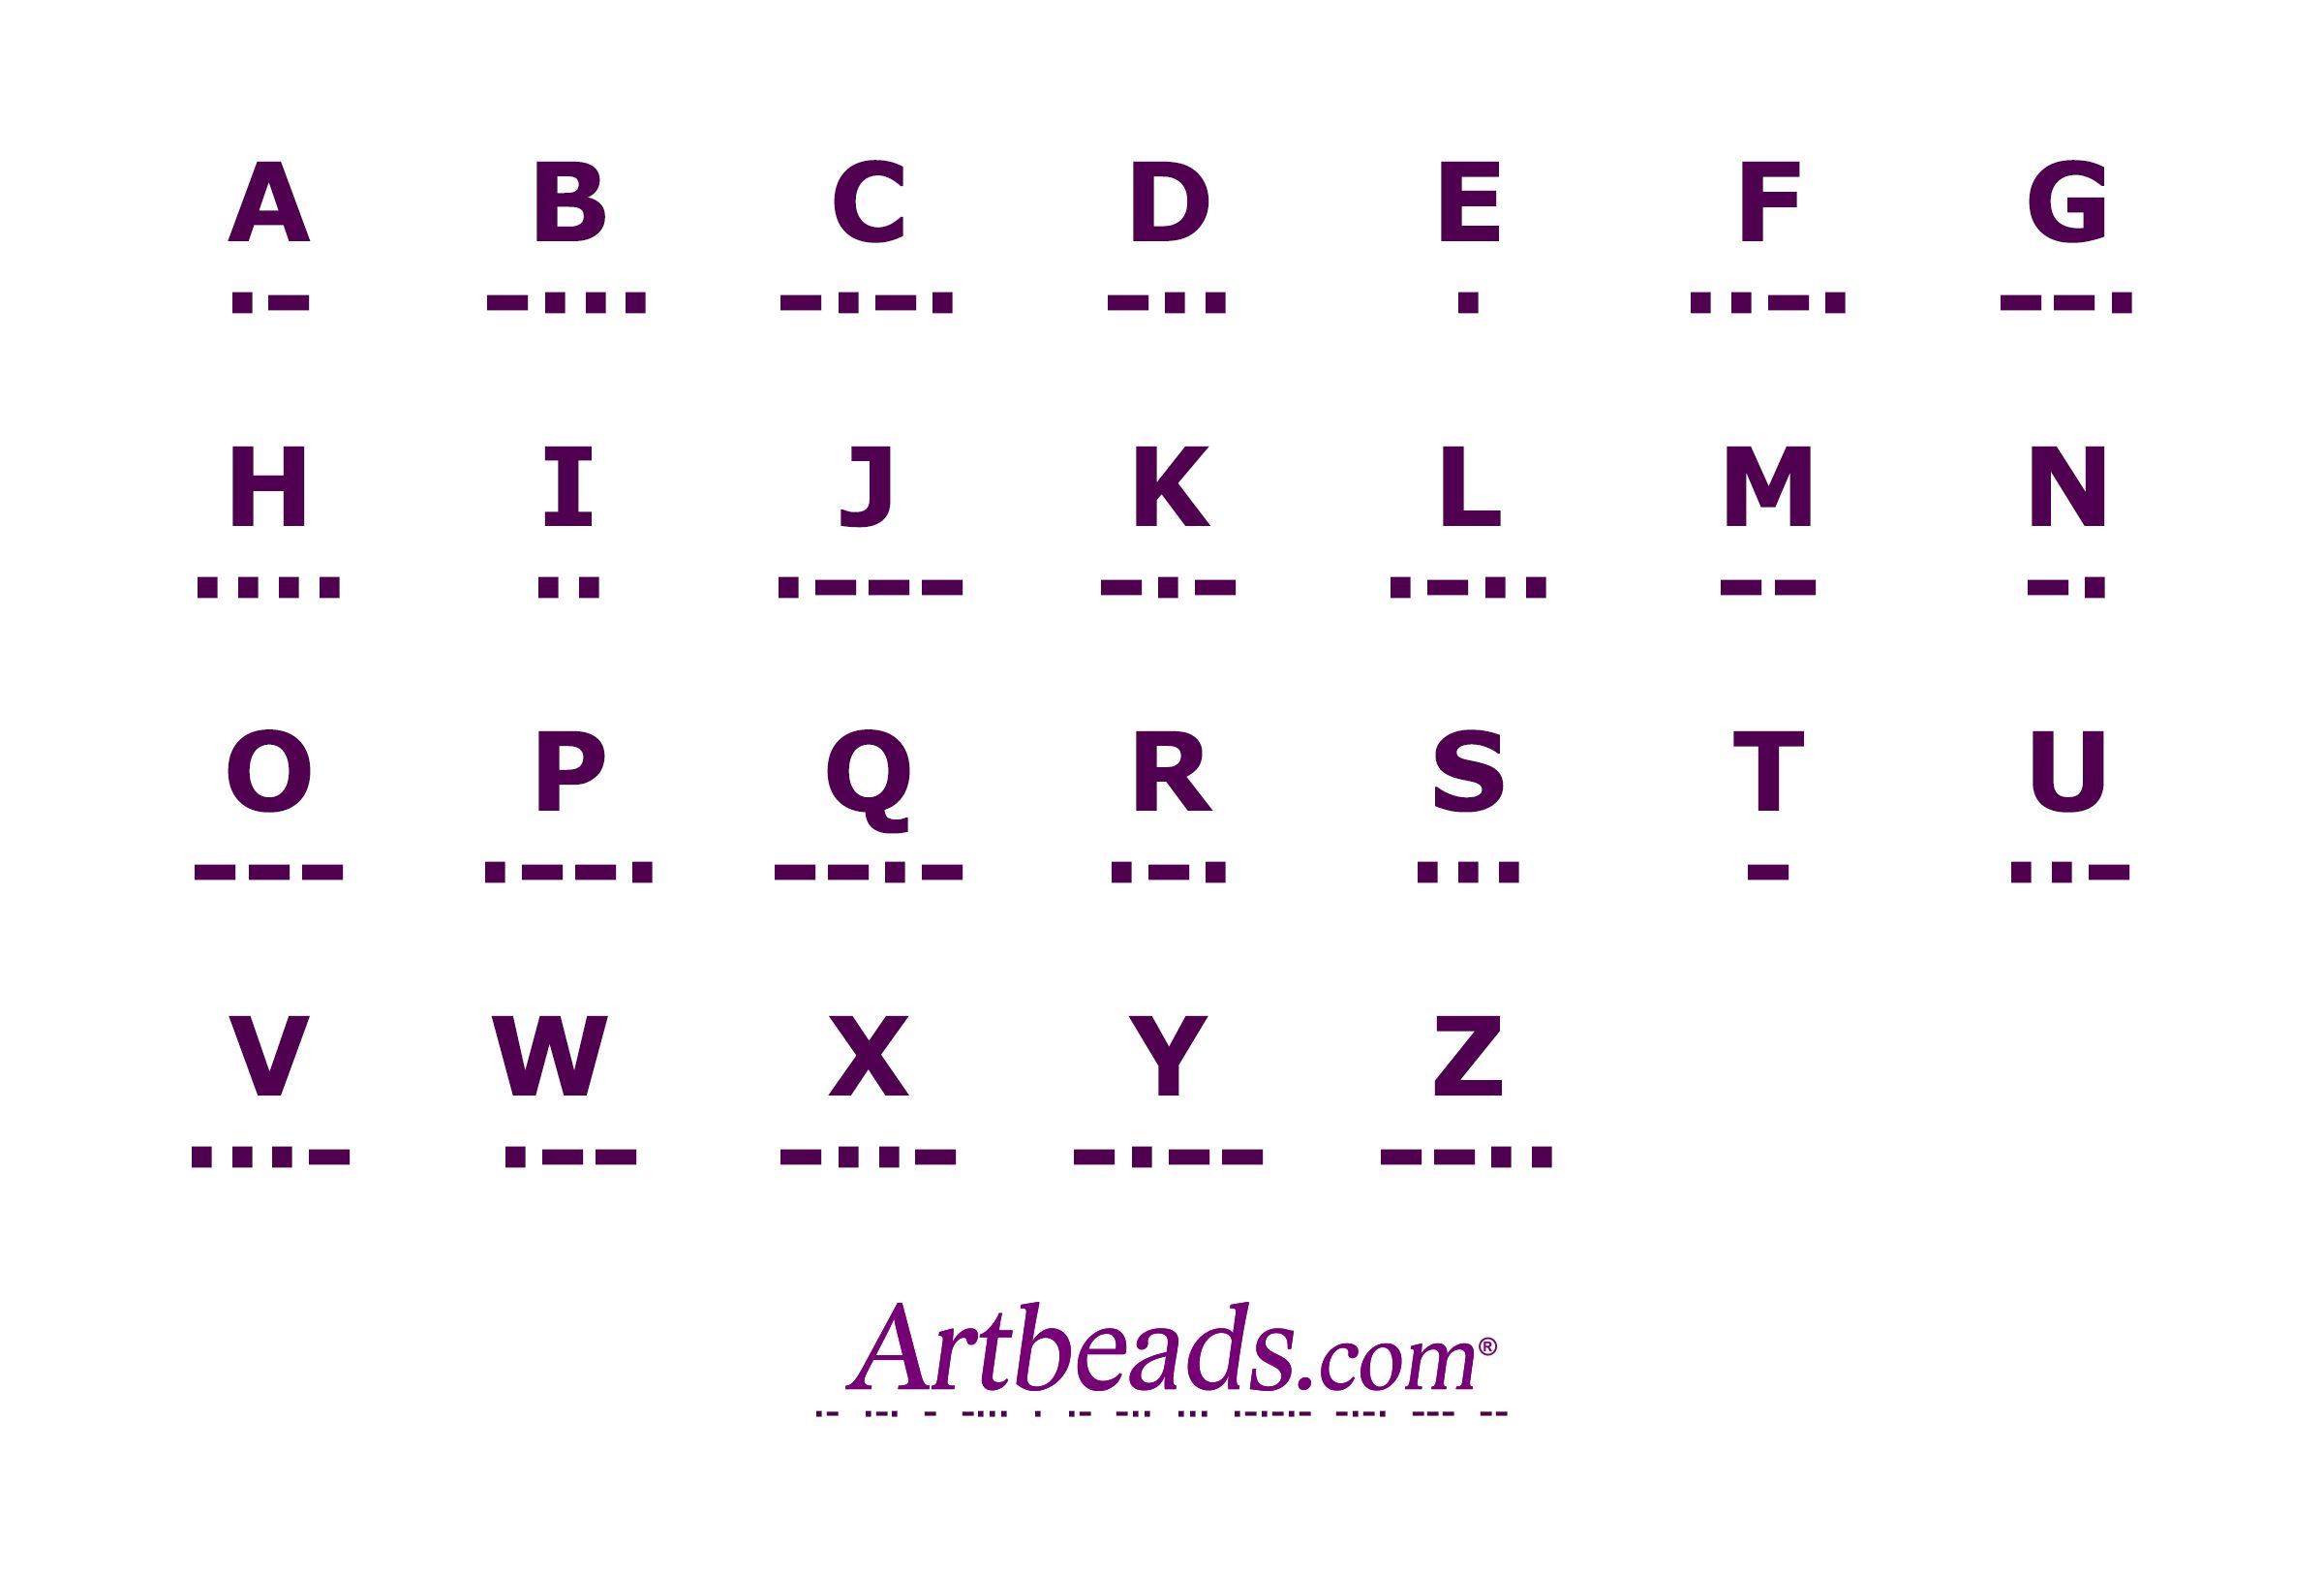 A Morse Code Chart From ArtbeadsCom A Handy Reference For Adding